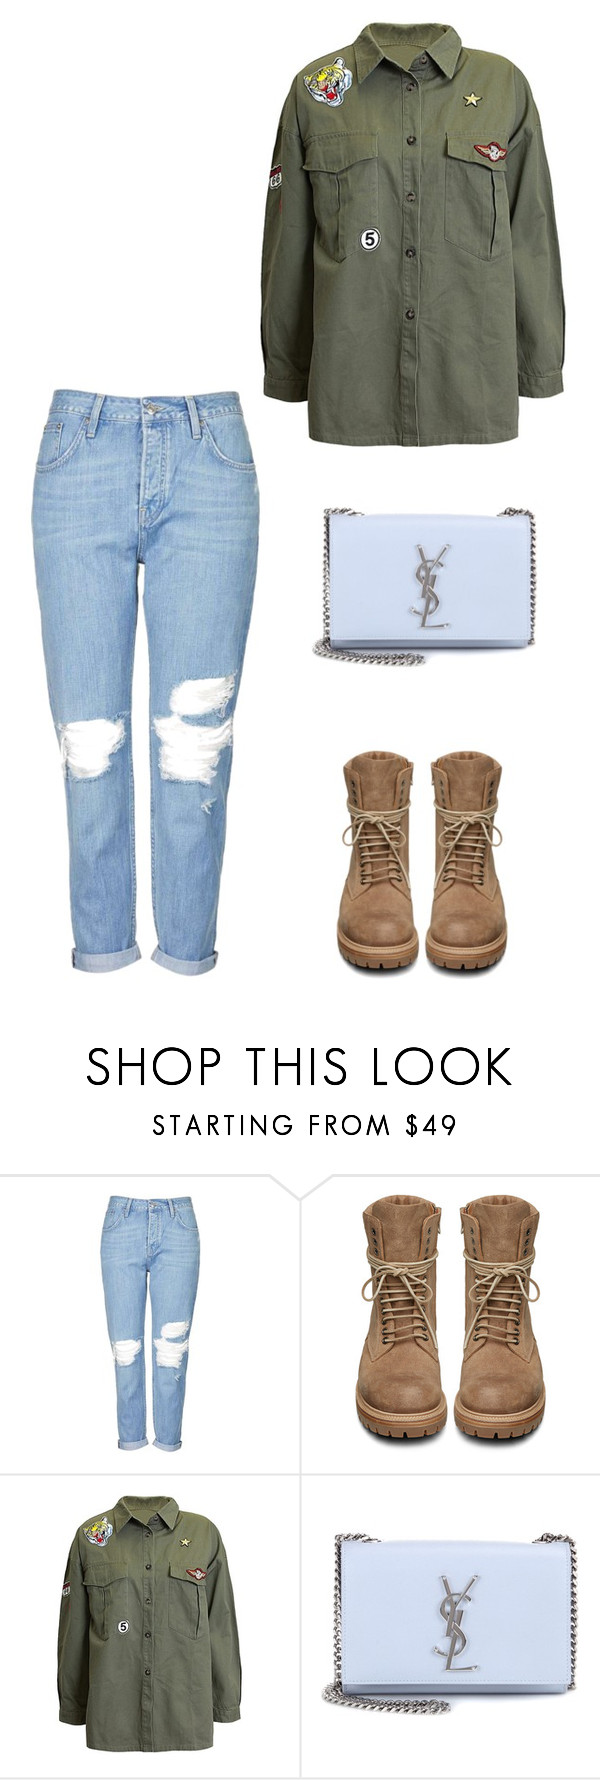 """""""Untitled #296"""" by doda-laban on Polyvore featuring Topshop, Rick Owens, Sans Souci and Yves Saint Laurent"""